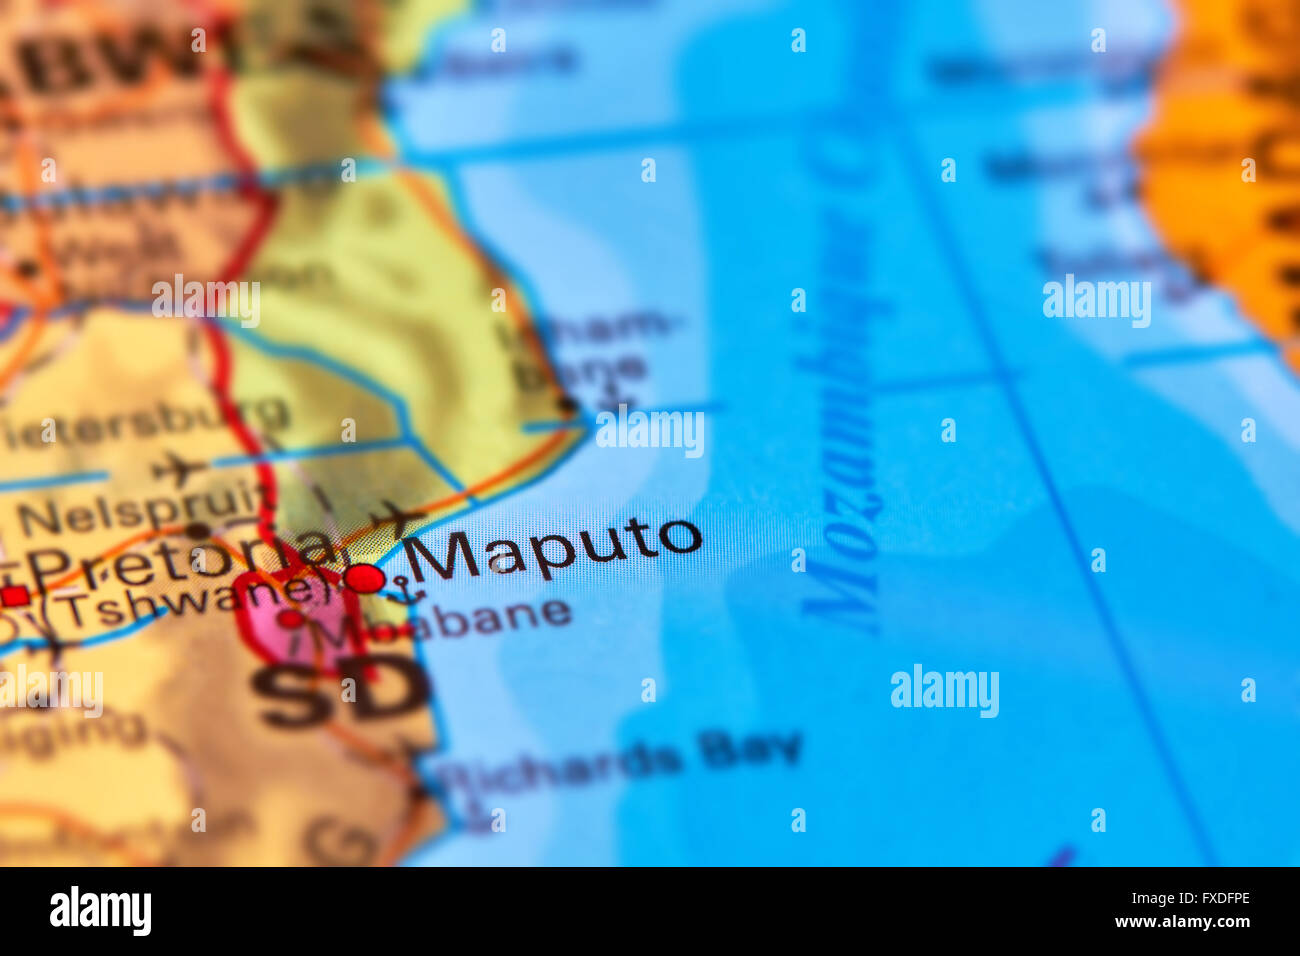 Maputo, Capital City of Mozambique on the World Map - Stock Image